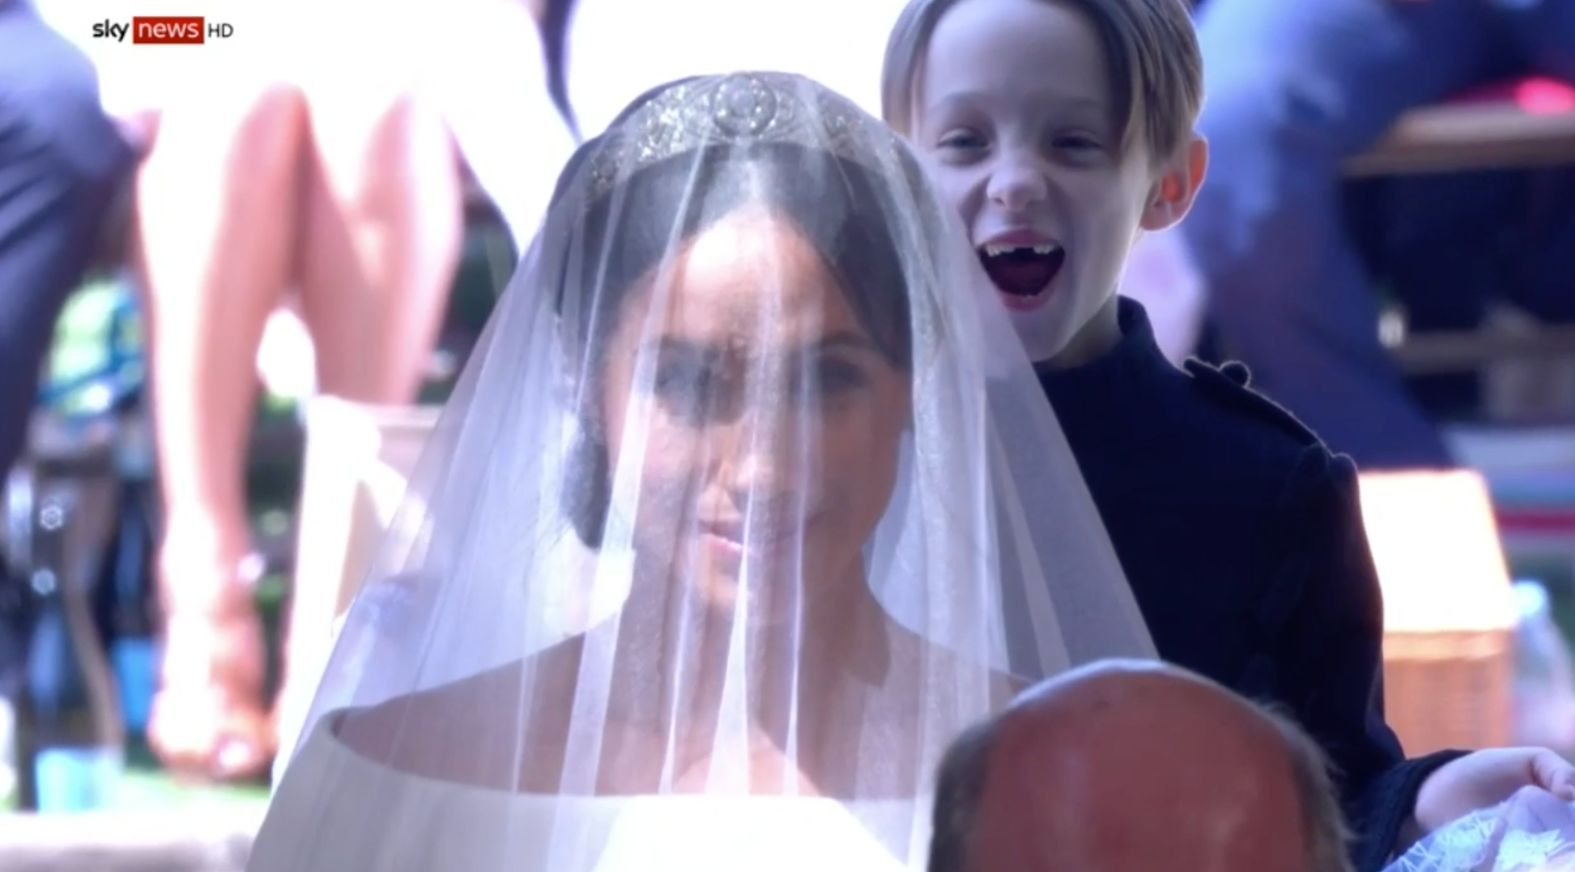 A 7-year-old pageboy at Meghan and Harry's wedding has stolen viewer's